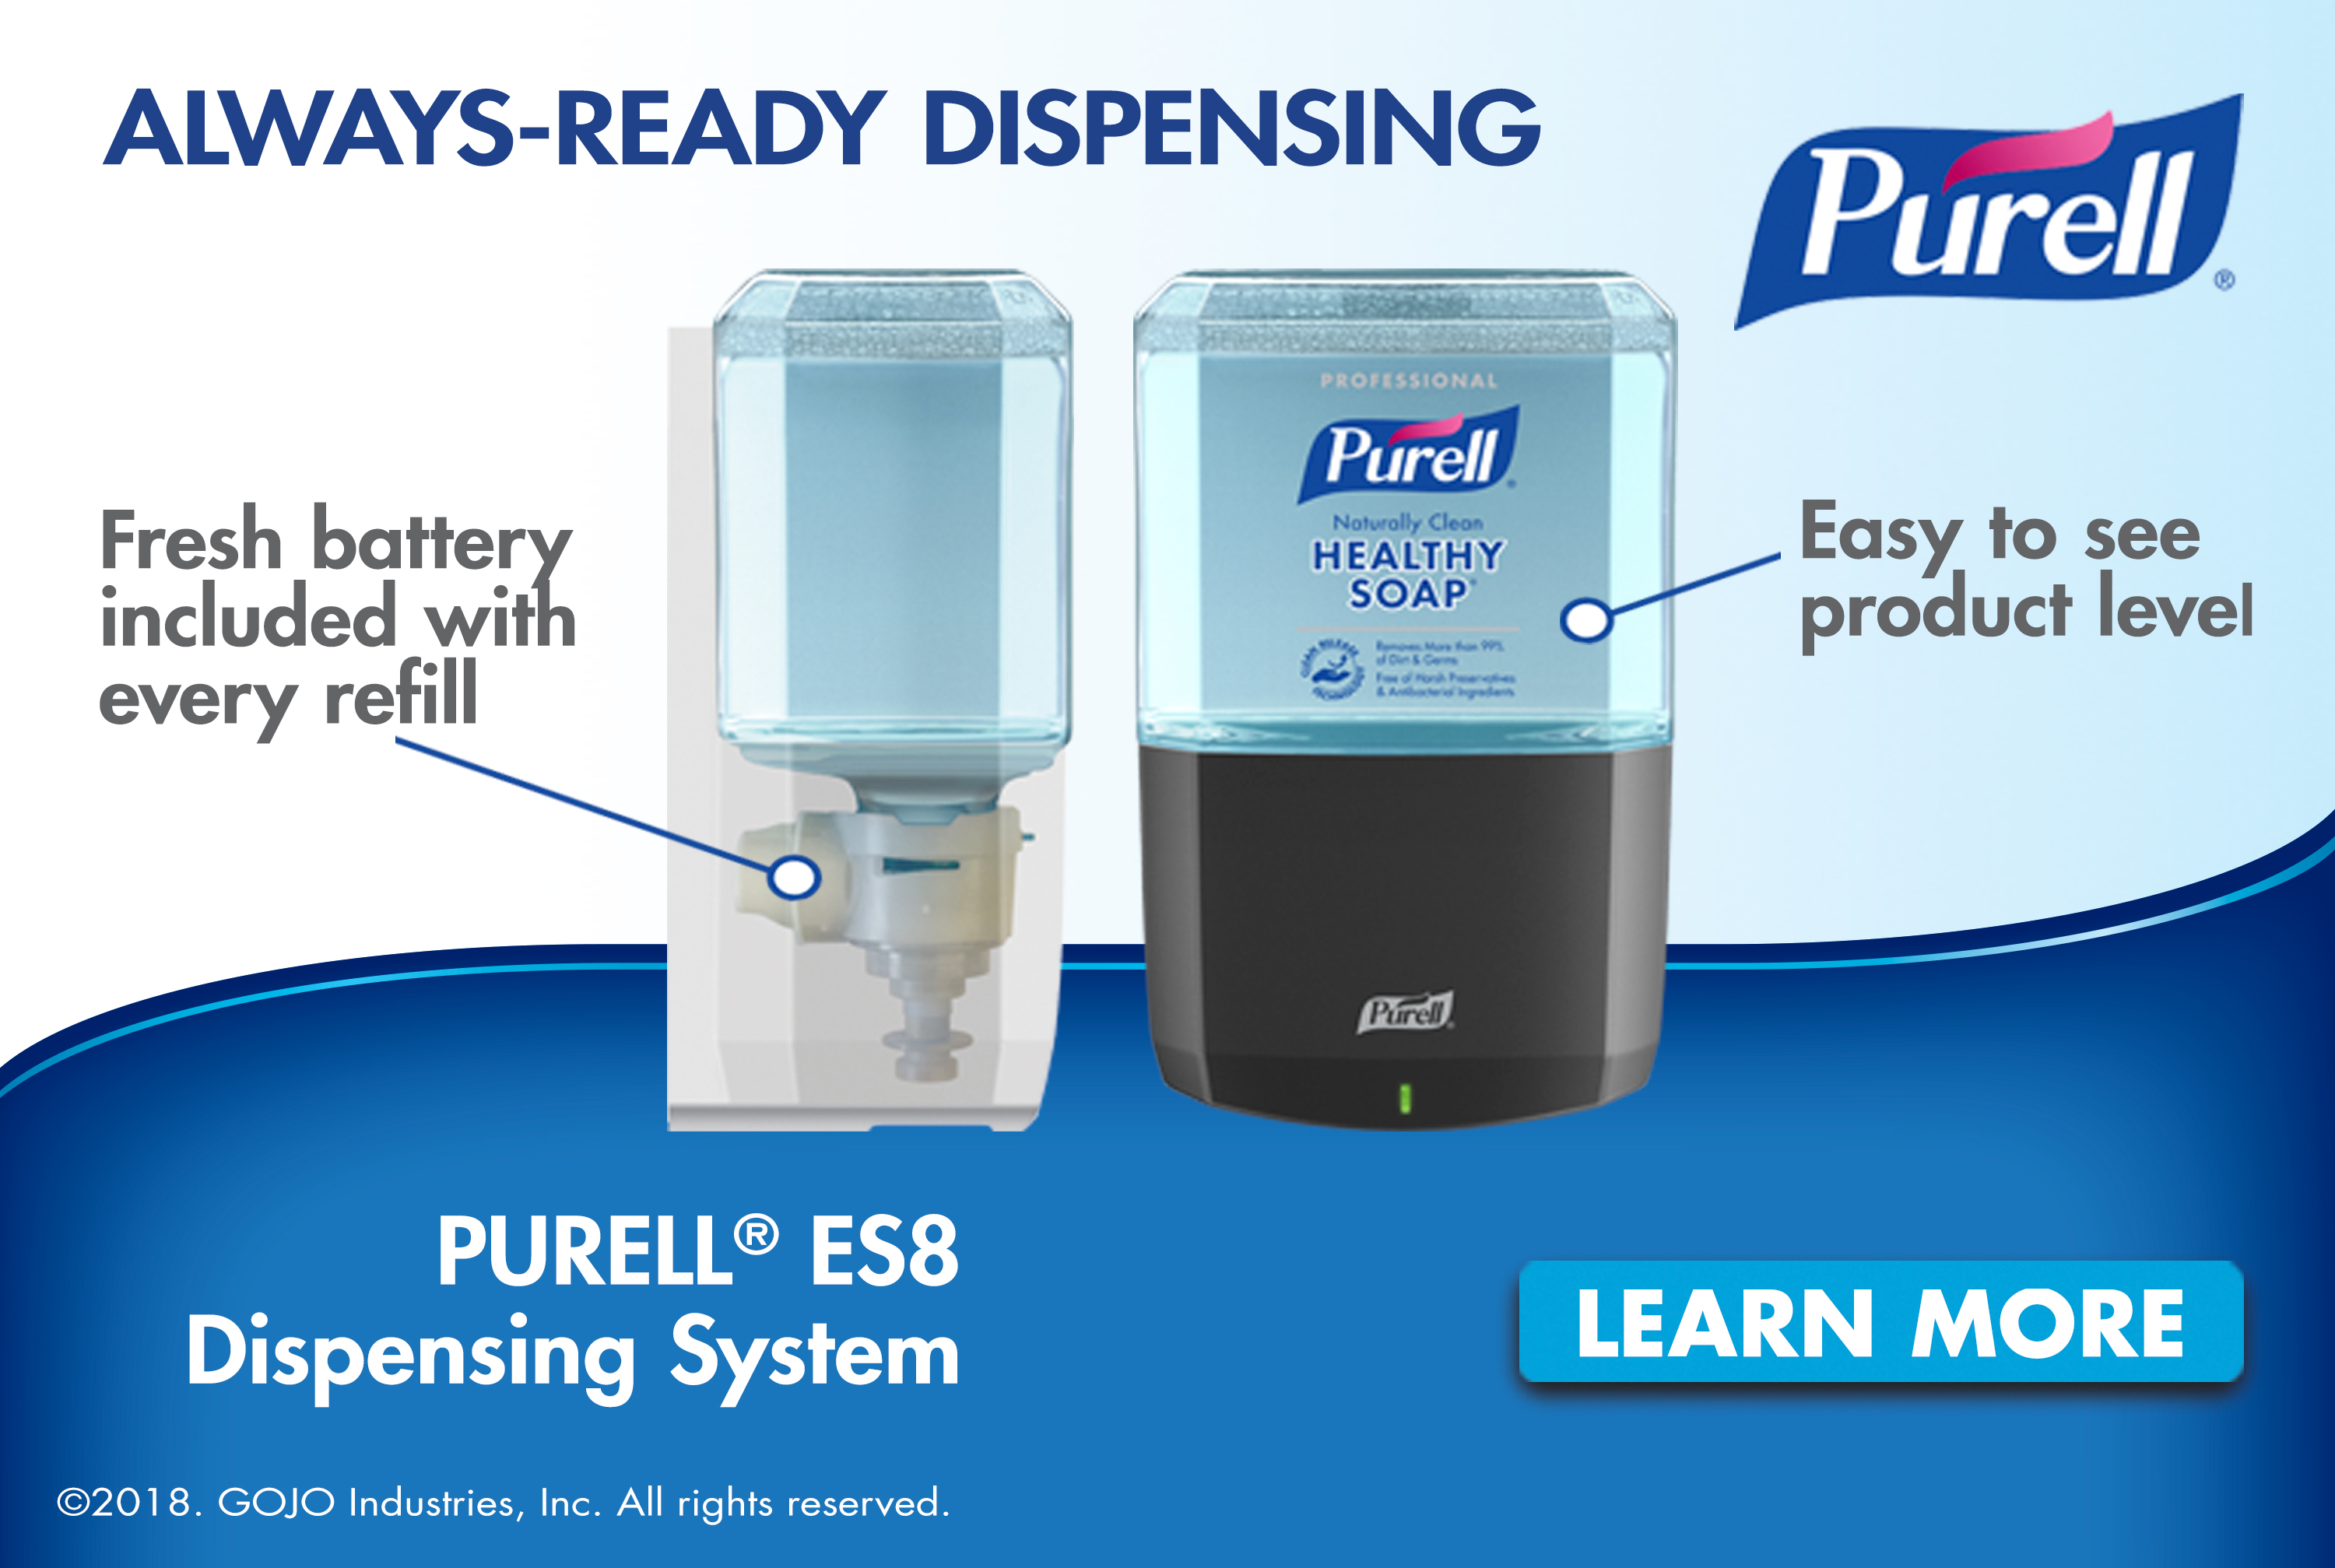 Purell ES8 soap and sanitizer dispensers